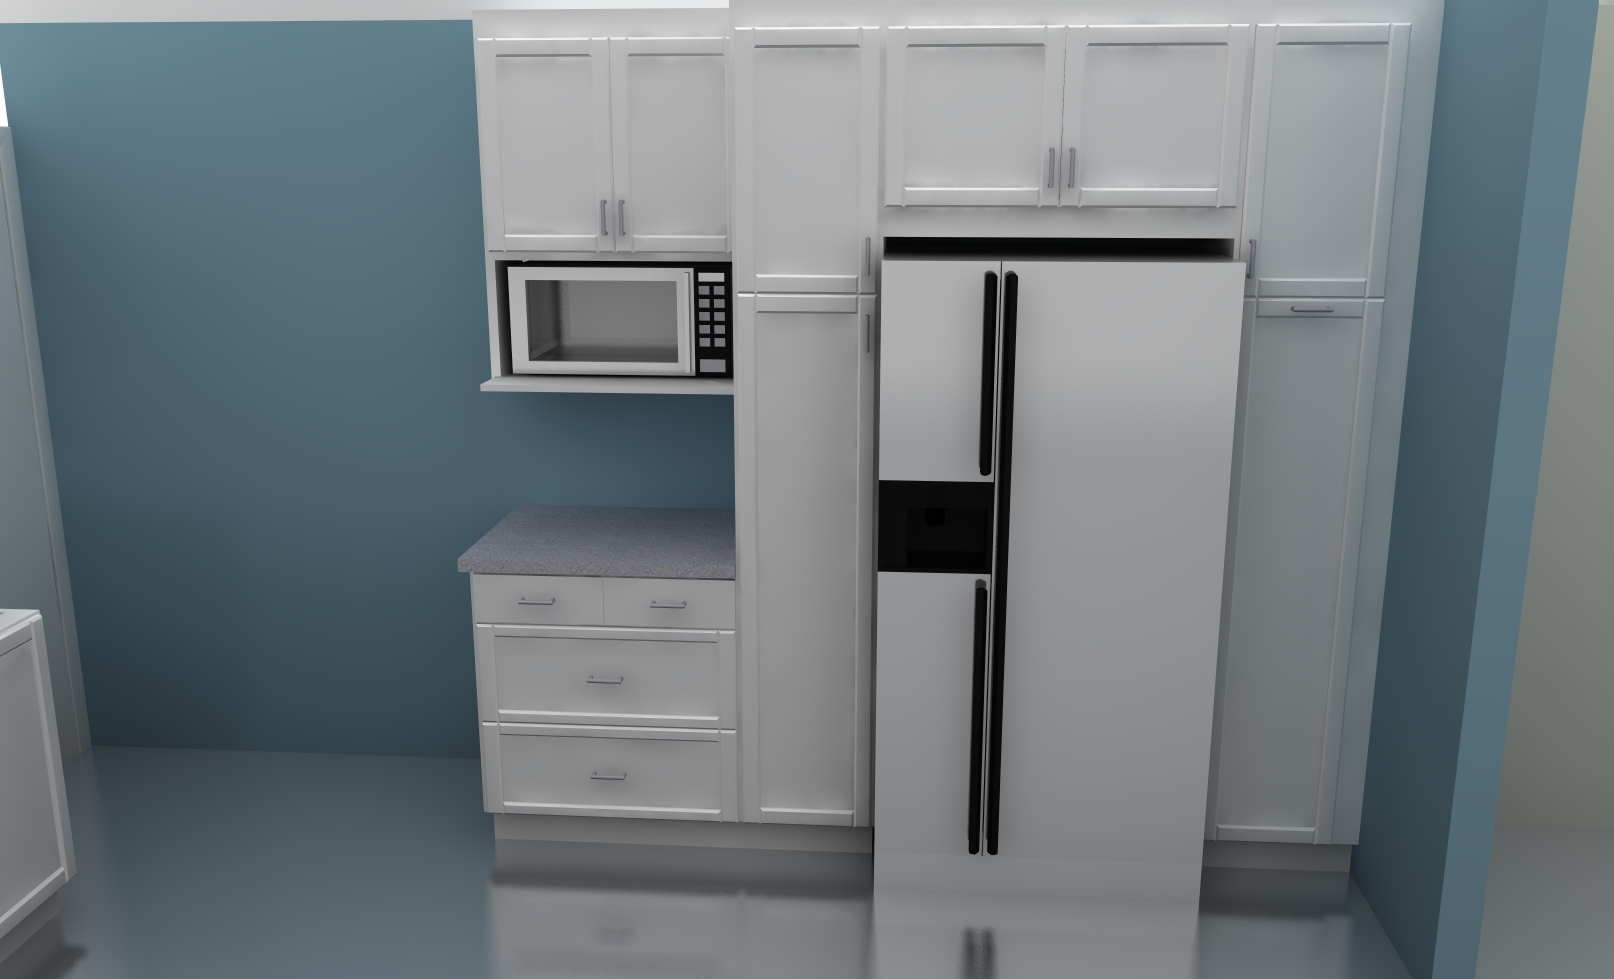 fridge ikea corner tall cabinet